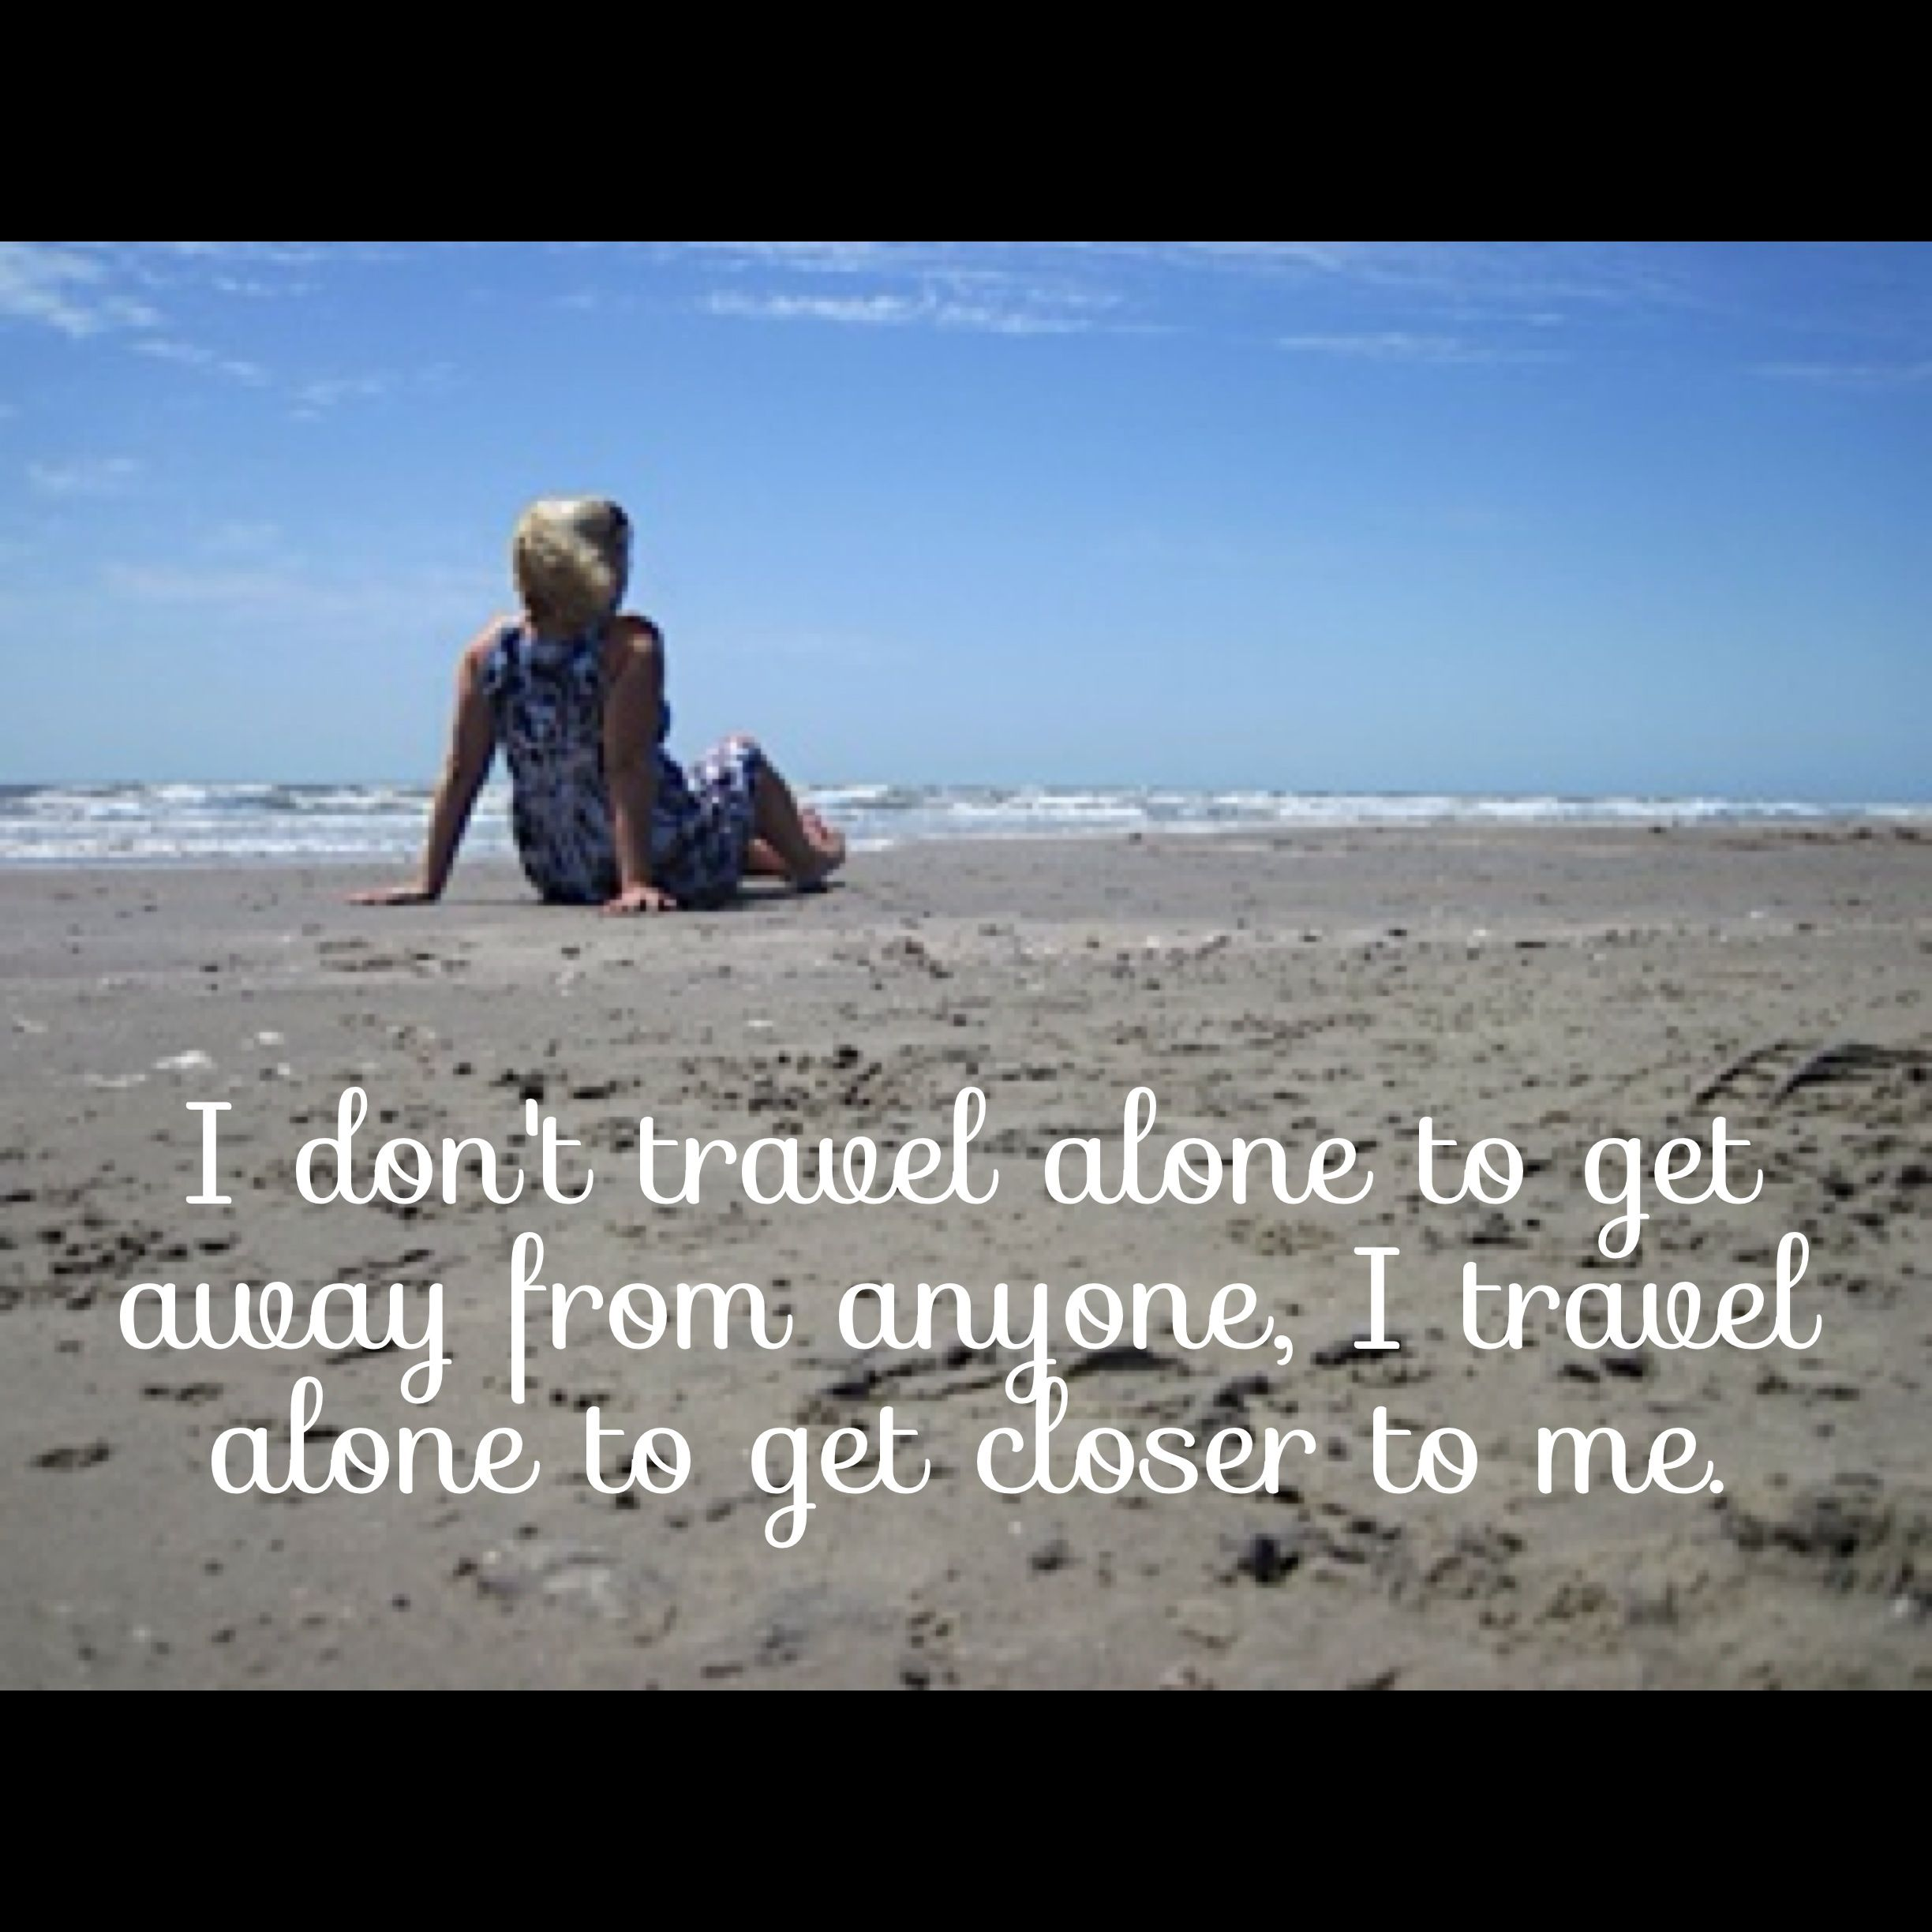 Travel Alone Quotes Stunning Self Photo With My Words To Describe Why I Love To Travel Solo